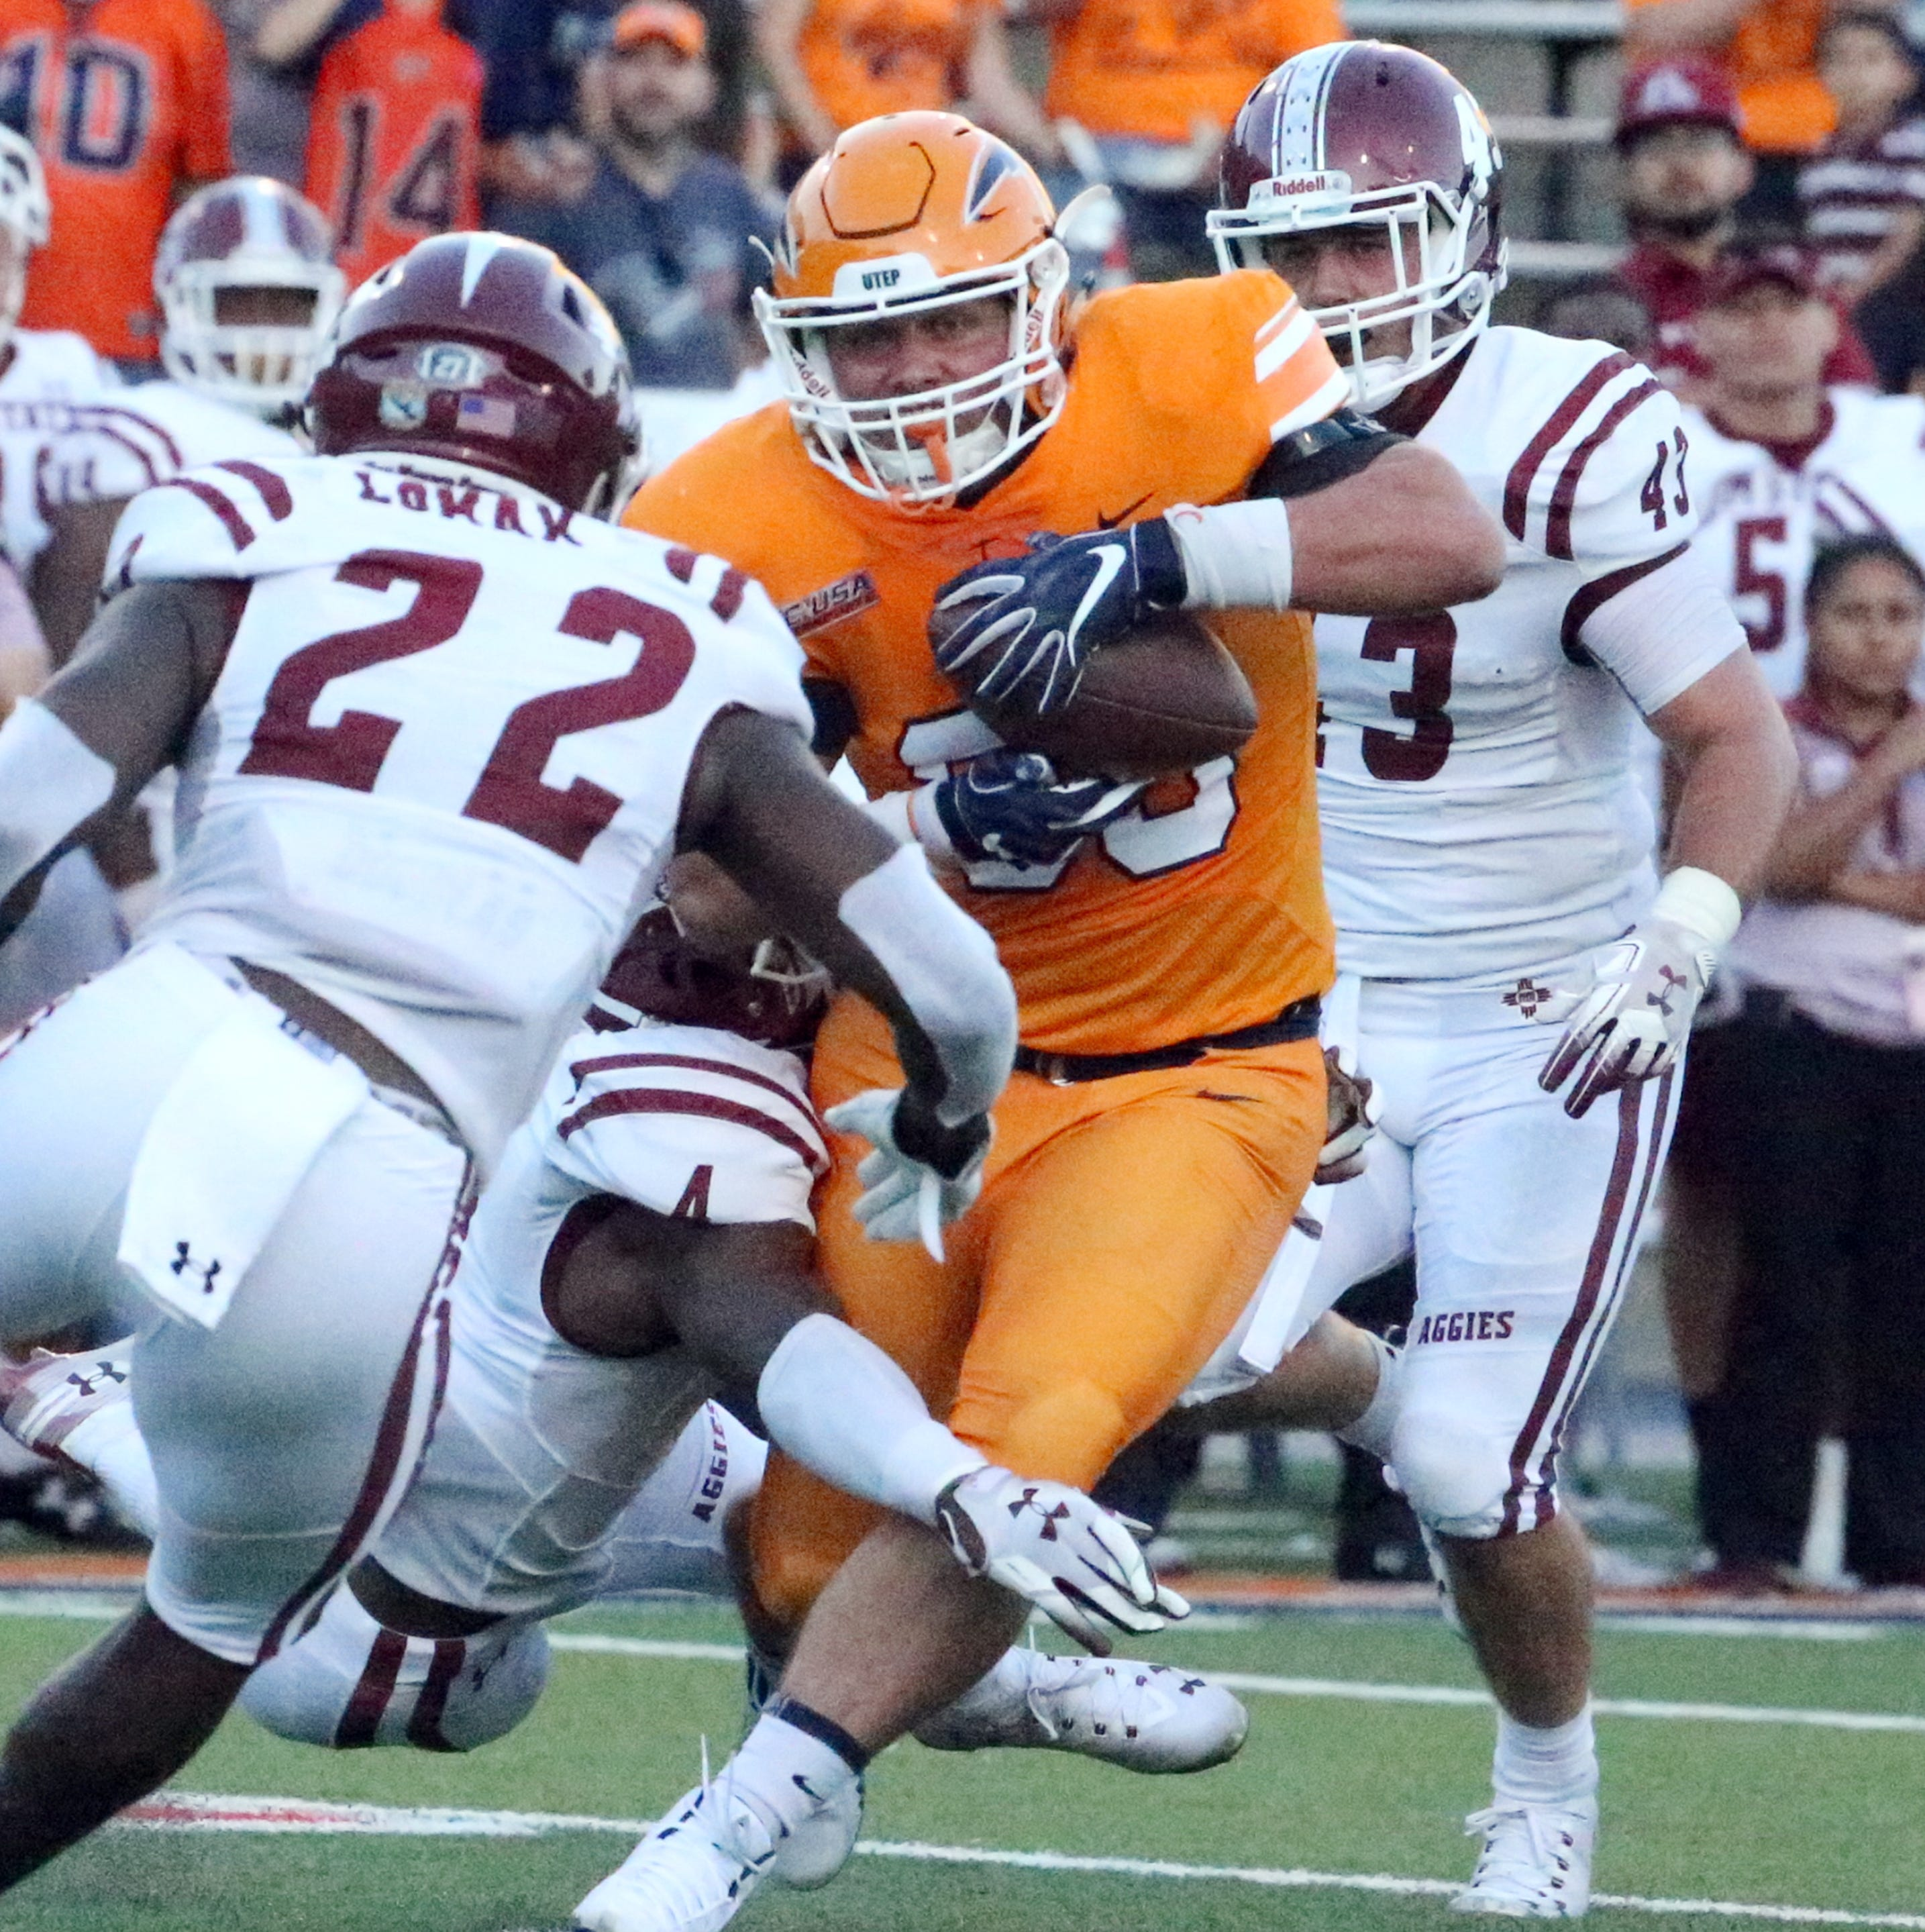 NMSU makes plays UTEP can't as longest losing streak in college football hits 16